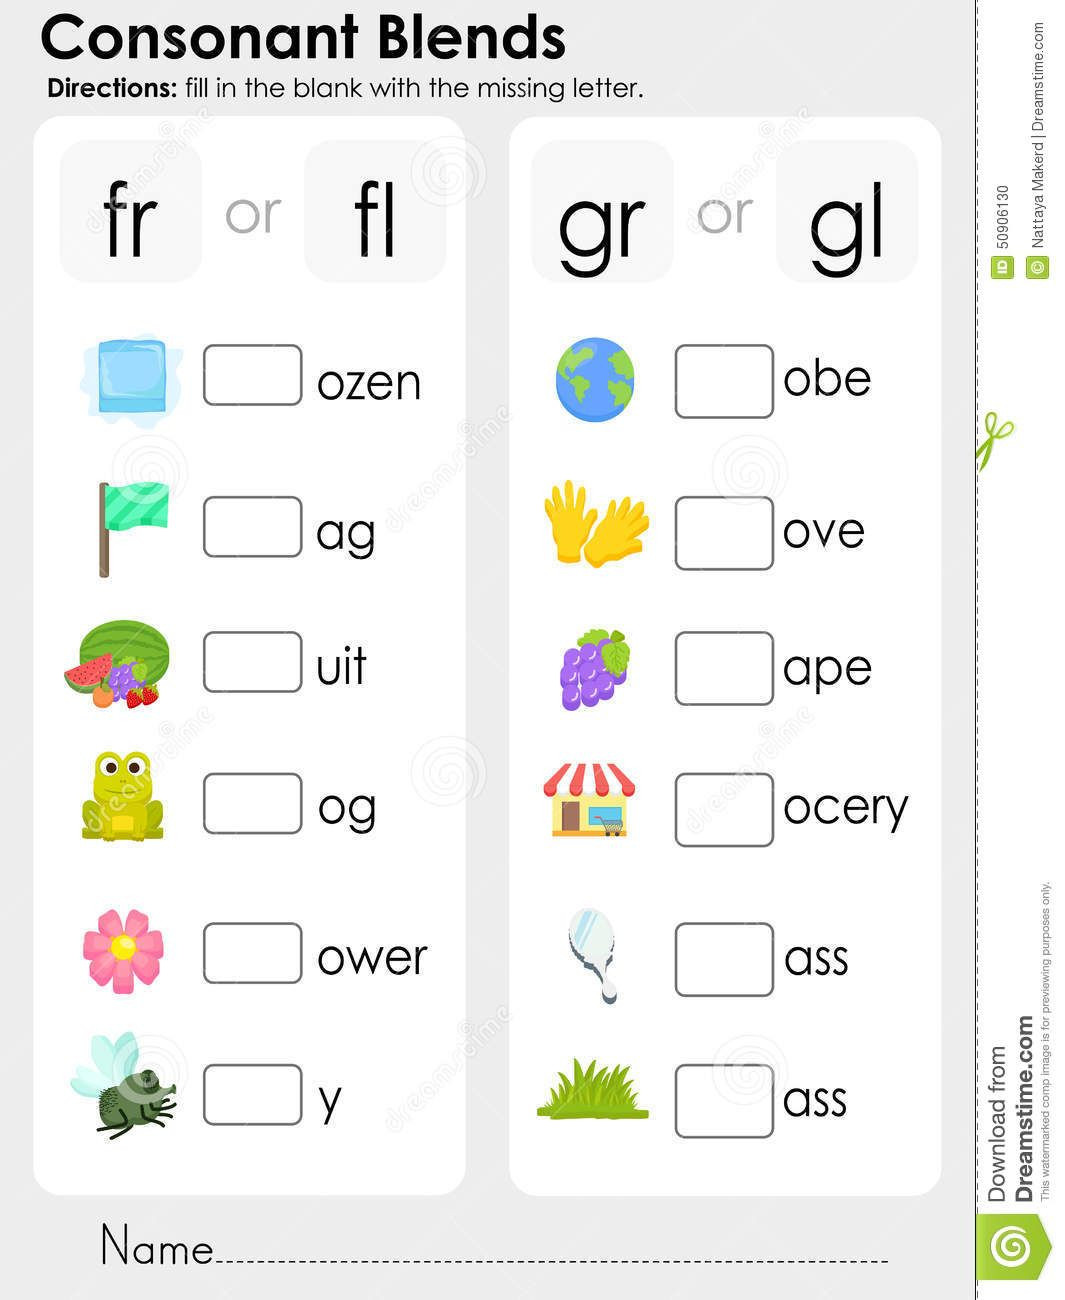 Free Printable R Blends Worksheets Consonant Blends Missing Letter Worksheet for Education